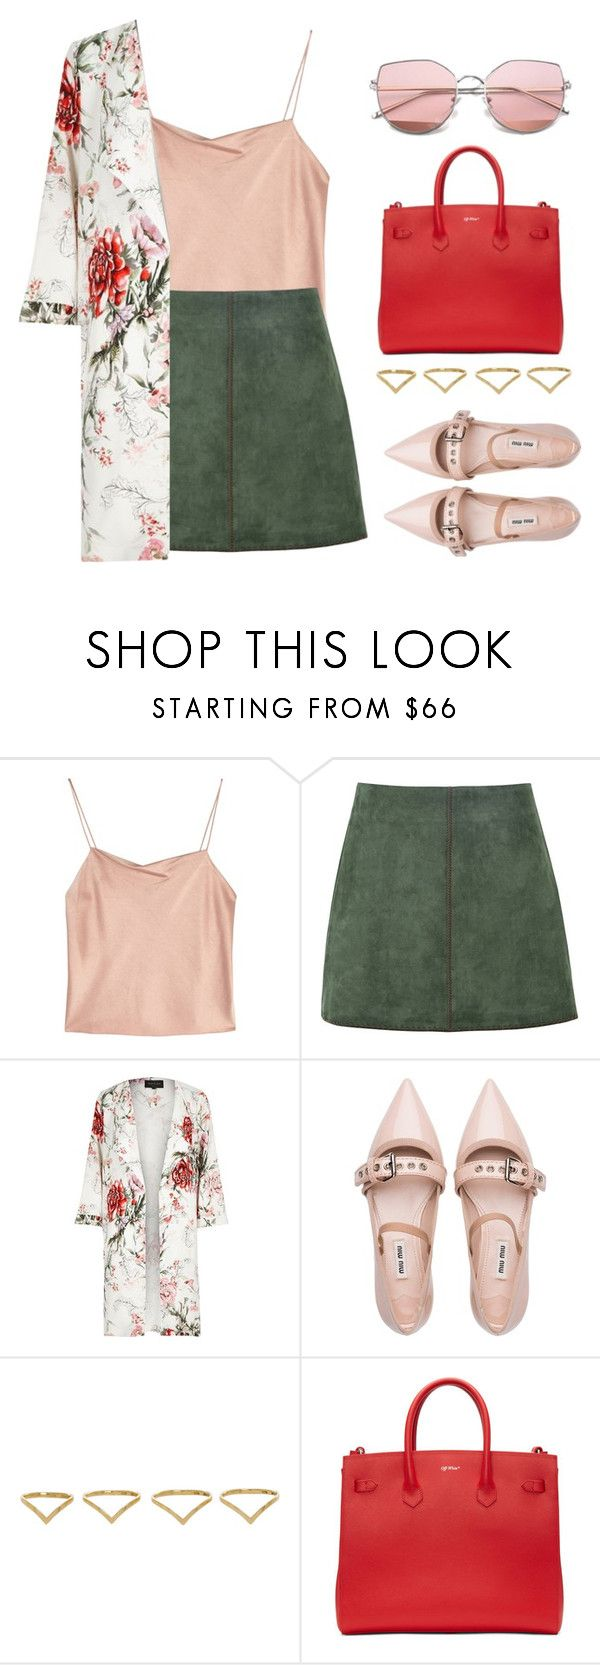 """""""till his last breath"""" by queenshaima ❤ liked on Polyvore featuring Alice + Olivia, George J. Love, River Island, Miu Miu, Ana Khouri and Off-White"""